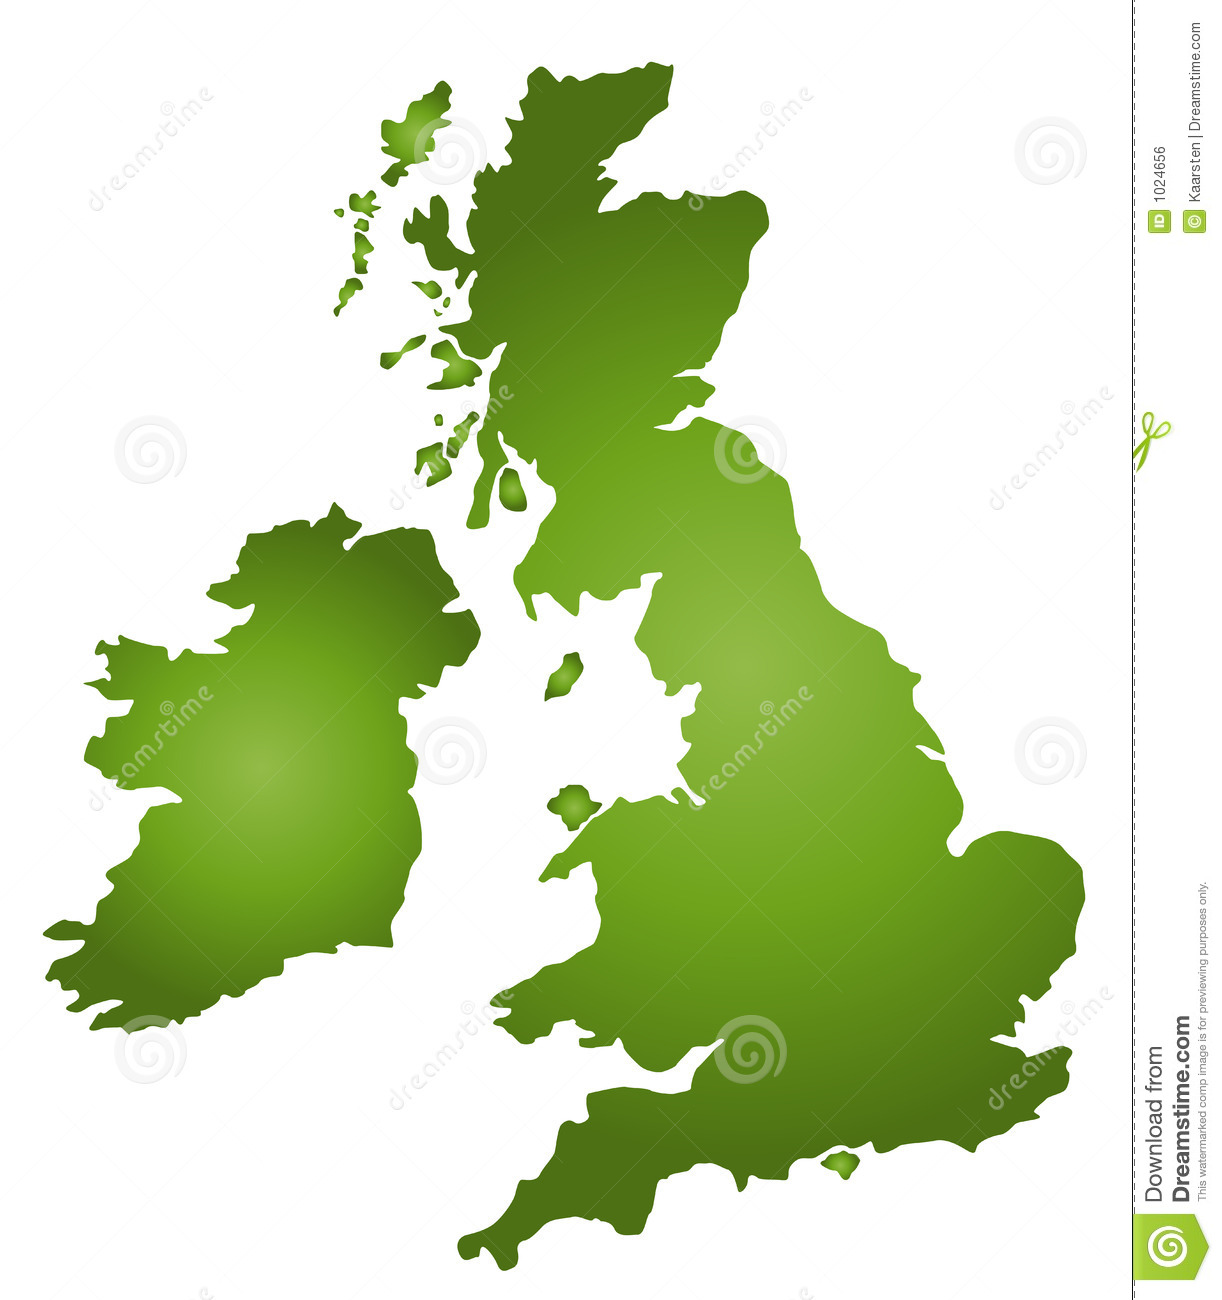 Map clipartfest of the. Clipart united kingdom